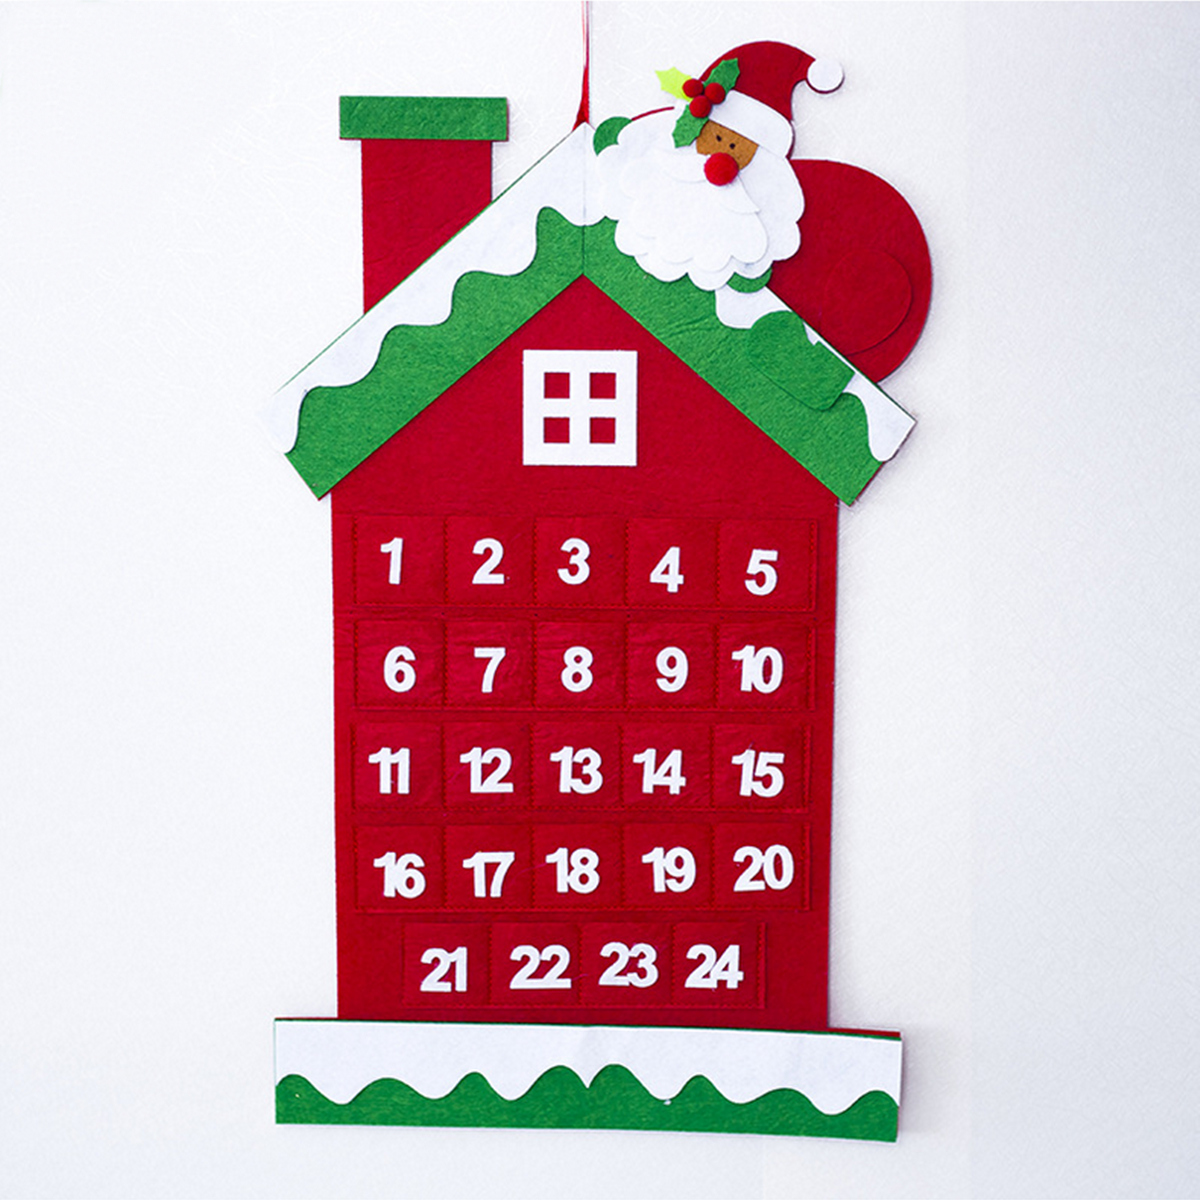 Christmas Tree Advent Calendar Felt Fabric Holiday Countdown Christmas Display Decor